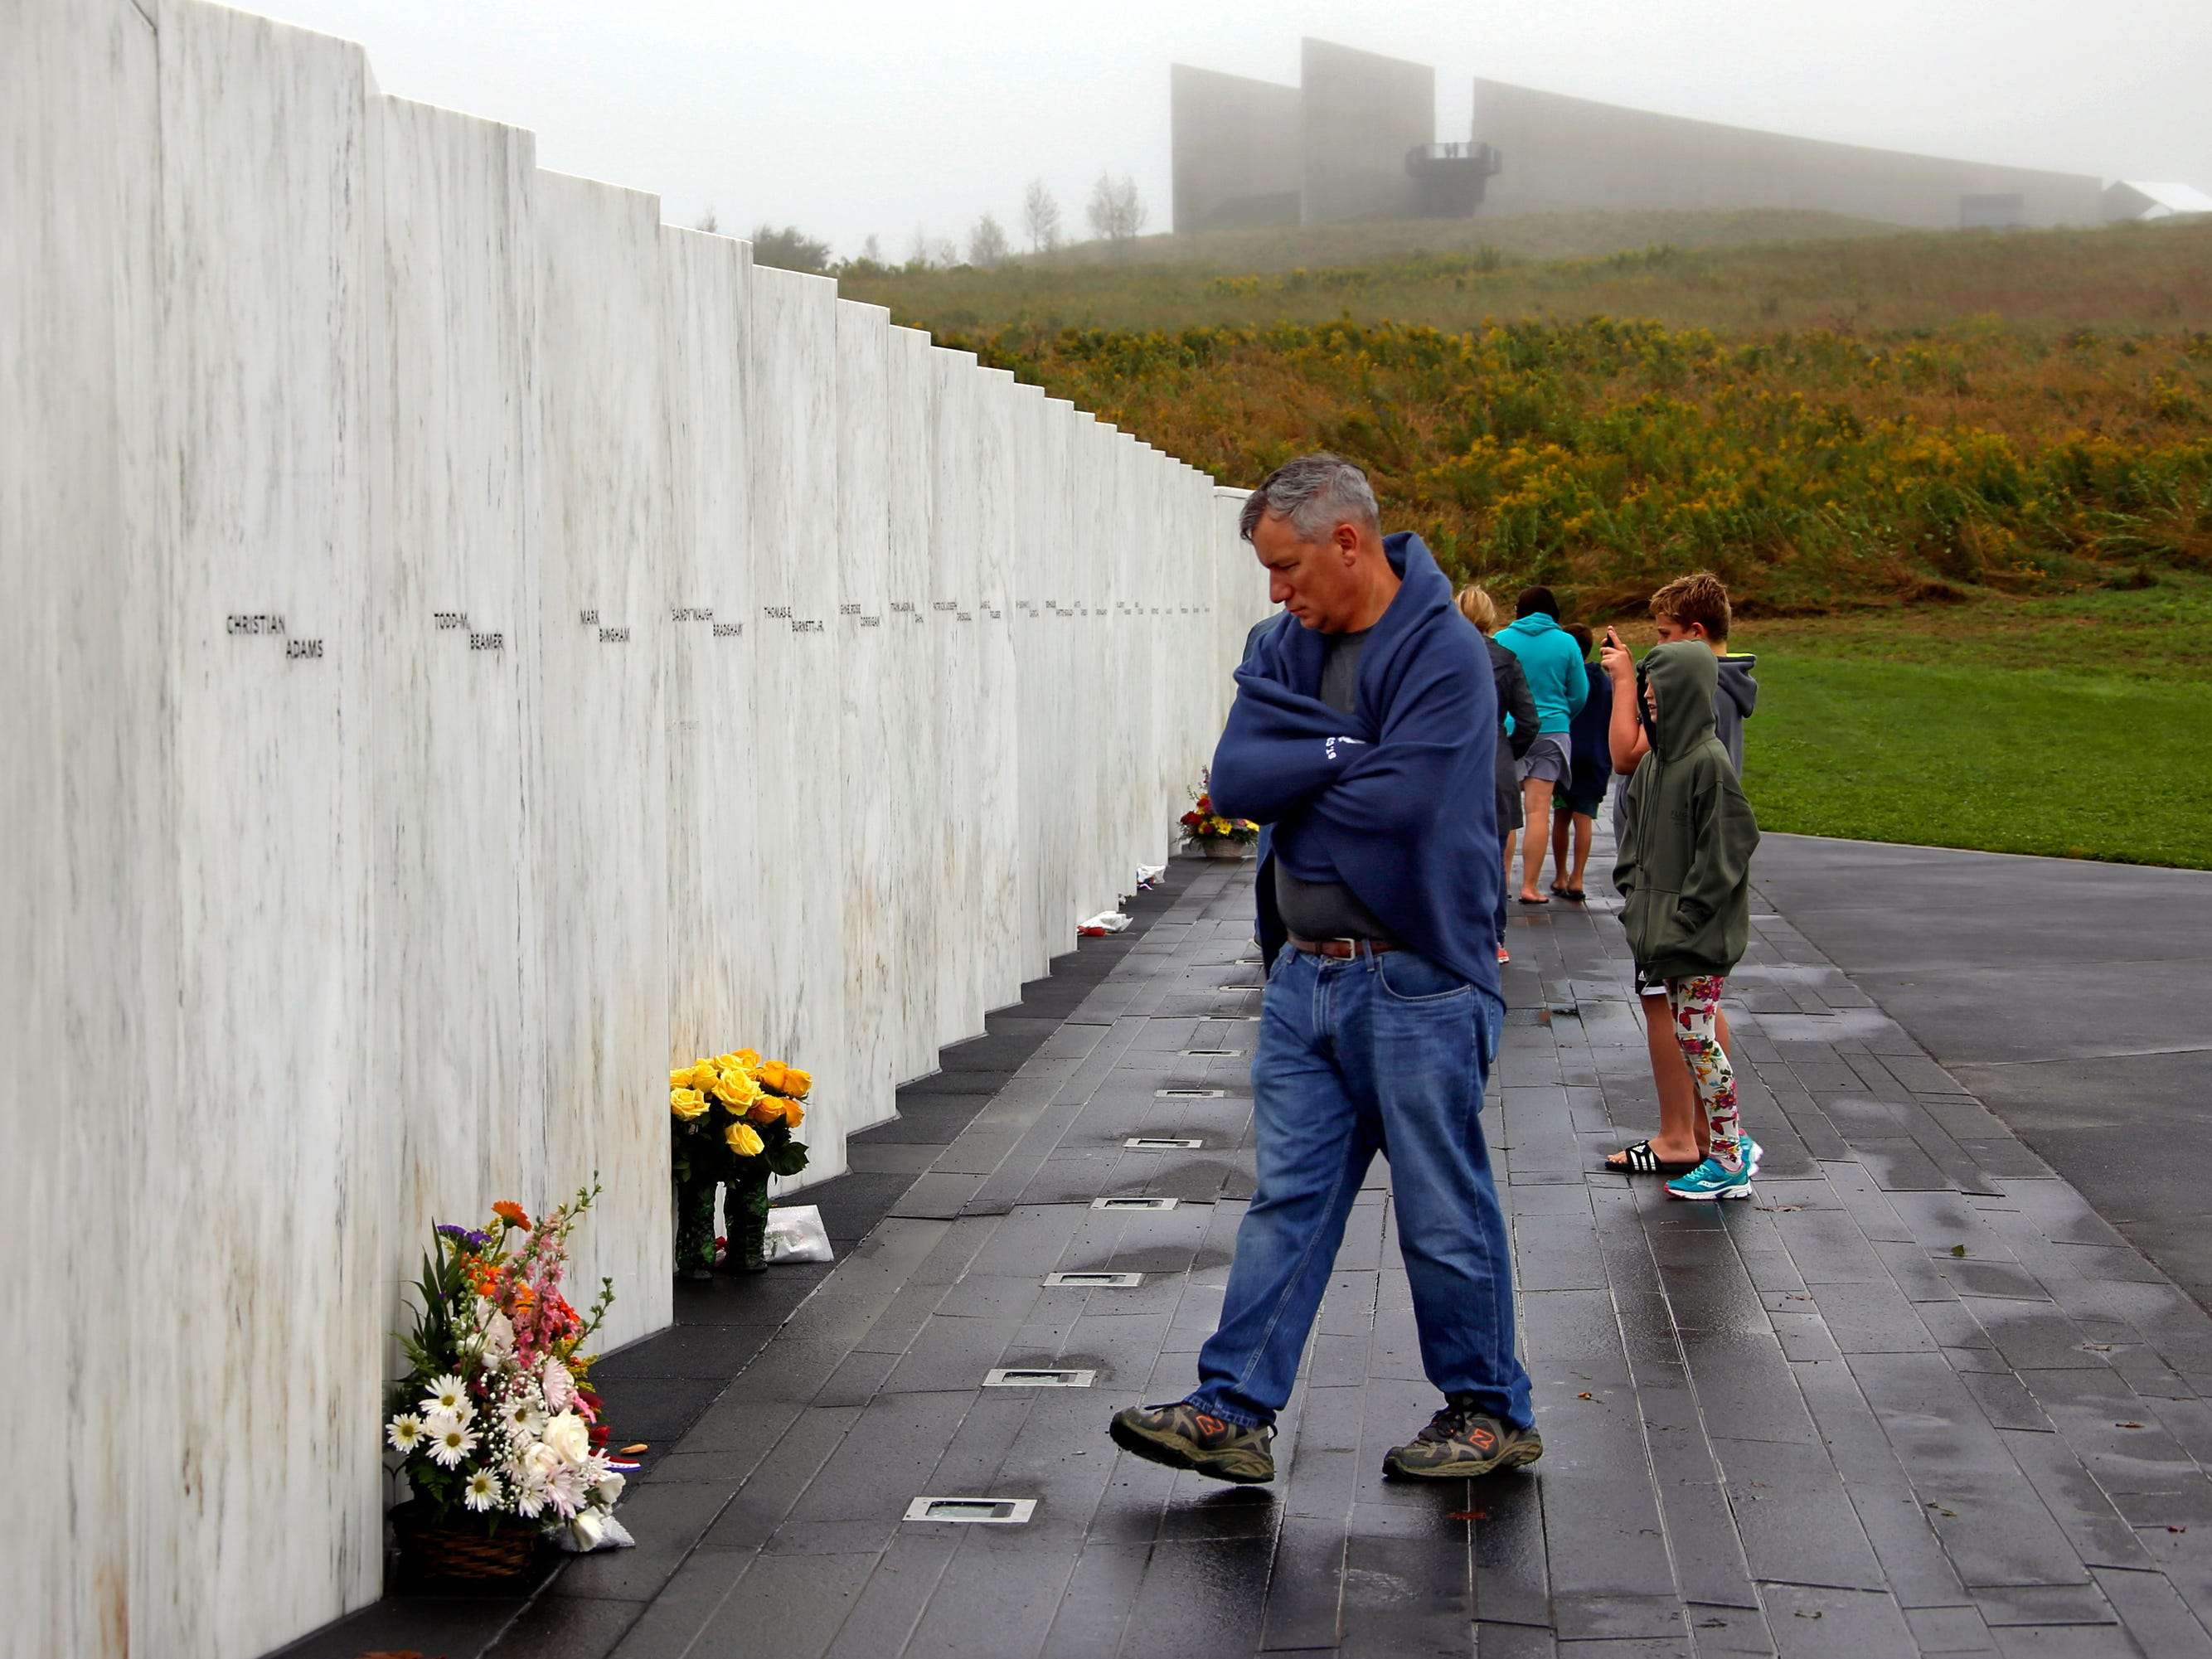 Visitors to the Flight 93 National Memorial in Shanksville, Pa., view the Wall of Names on Monday, Sept. 10, 2018, as the nation marks the 17th anniversary of the Sept. 11, 2001 attacks. The Wall of Names contains the names of the 44 people who died in the crash of Flight 93 on Sept. 11. (AP Photo/Gene J. Puskar) ORG XMIT: PAGP103